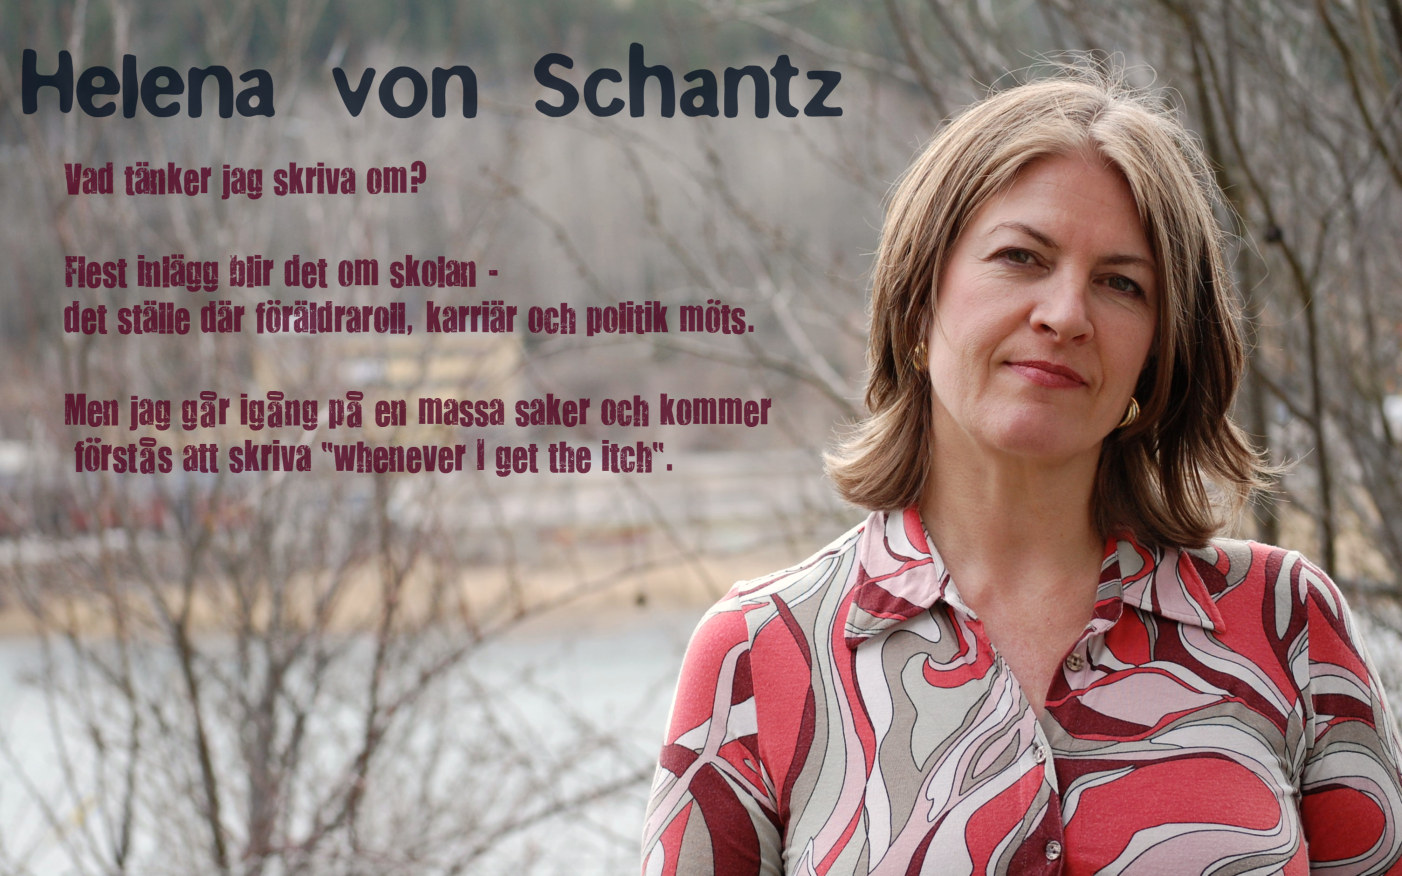 Helena von Schantz